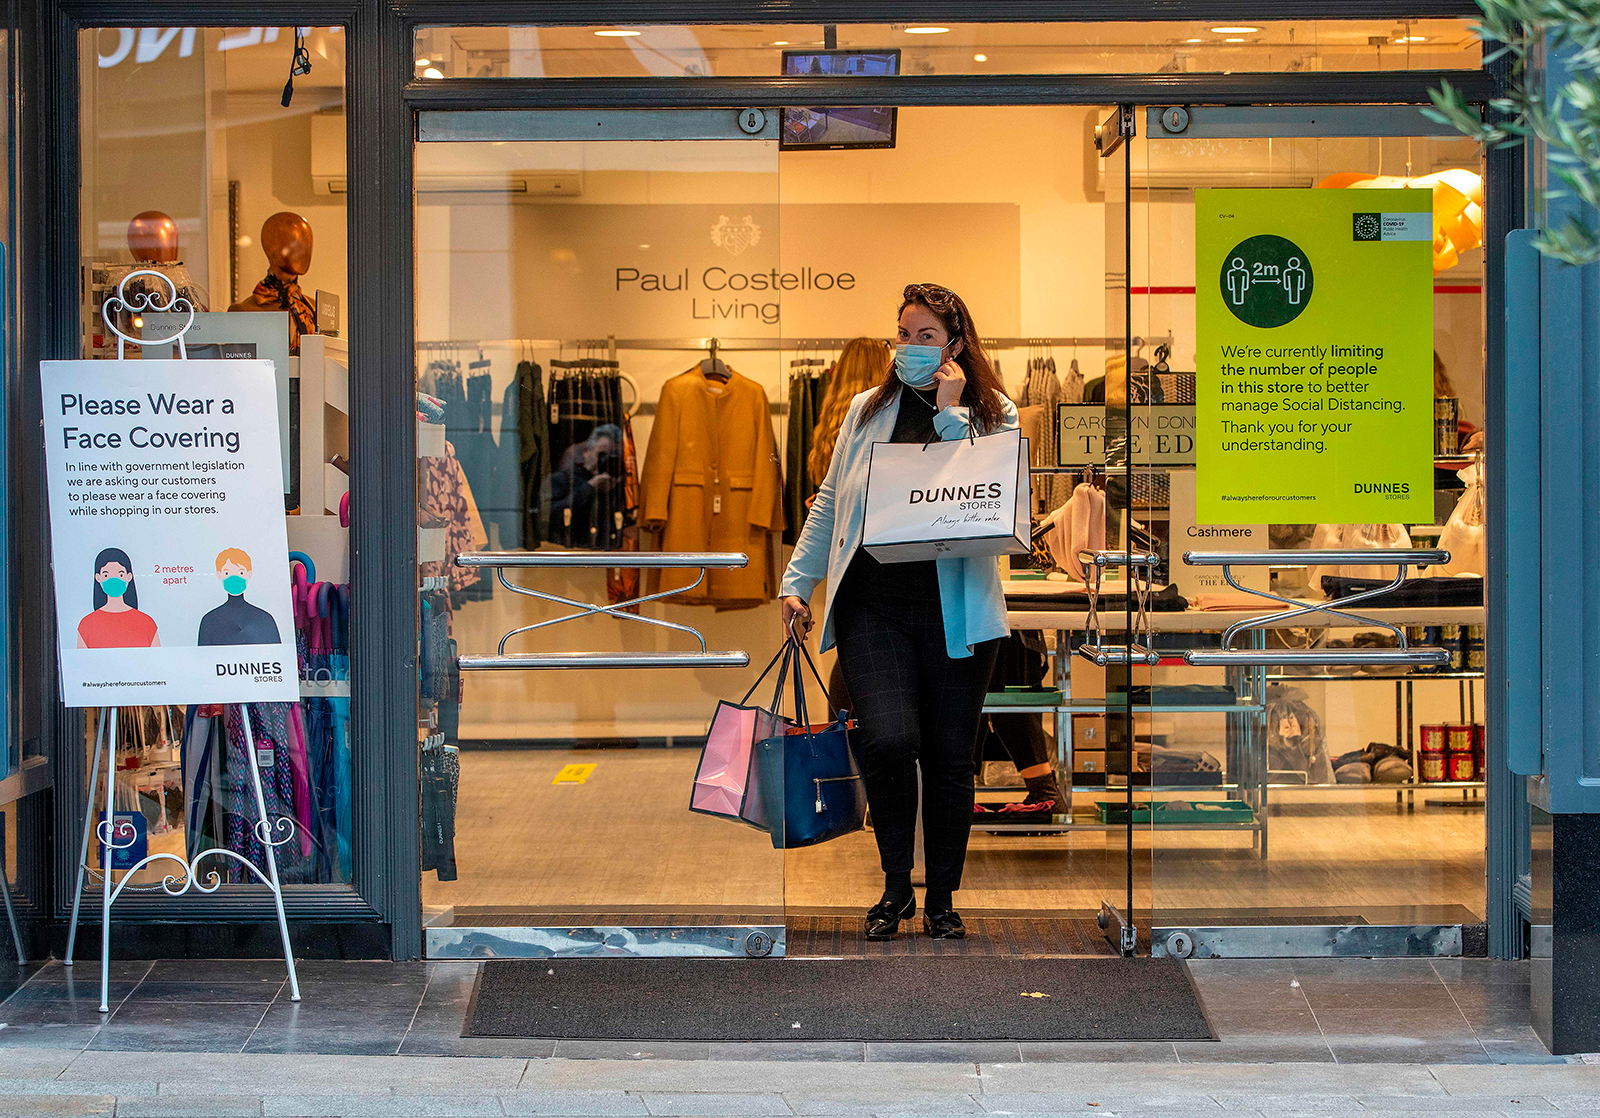 A shopper exits a store in Grafton Street in Dublin on Oct. 21.